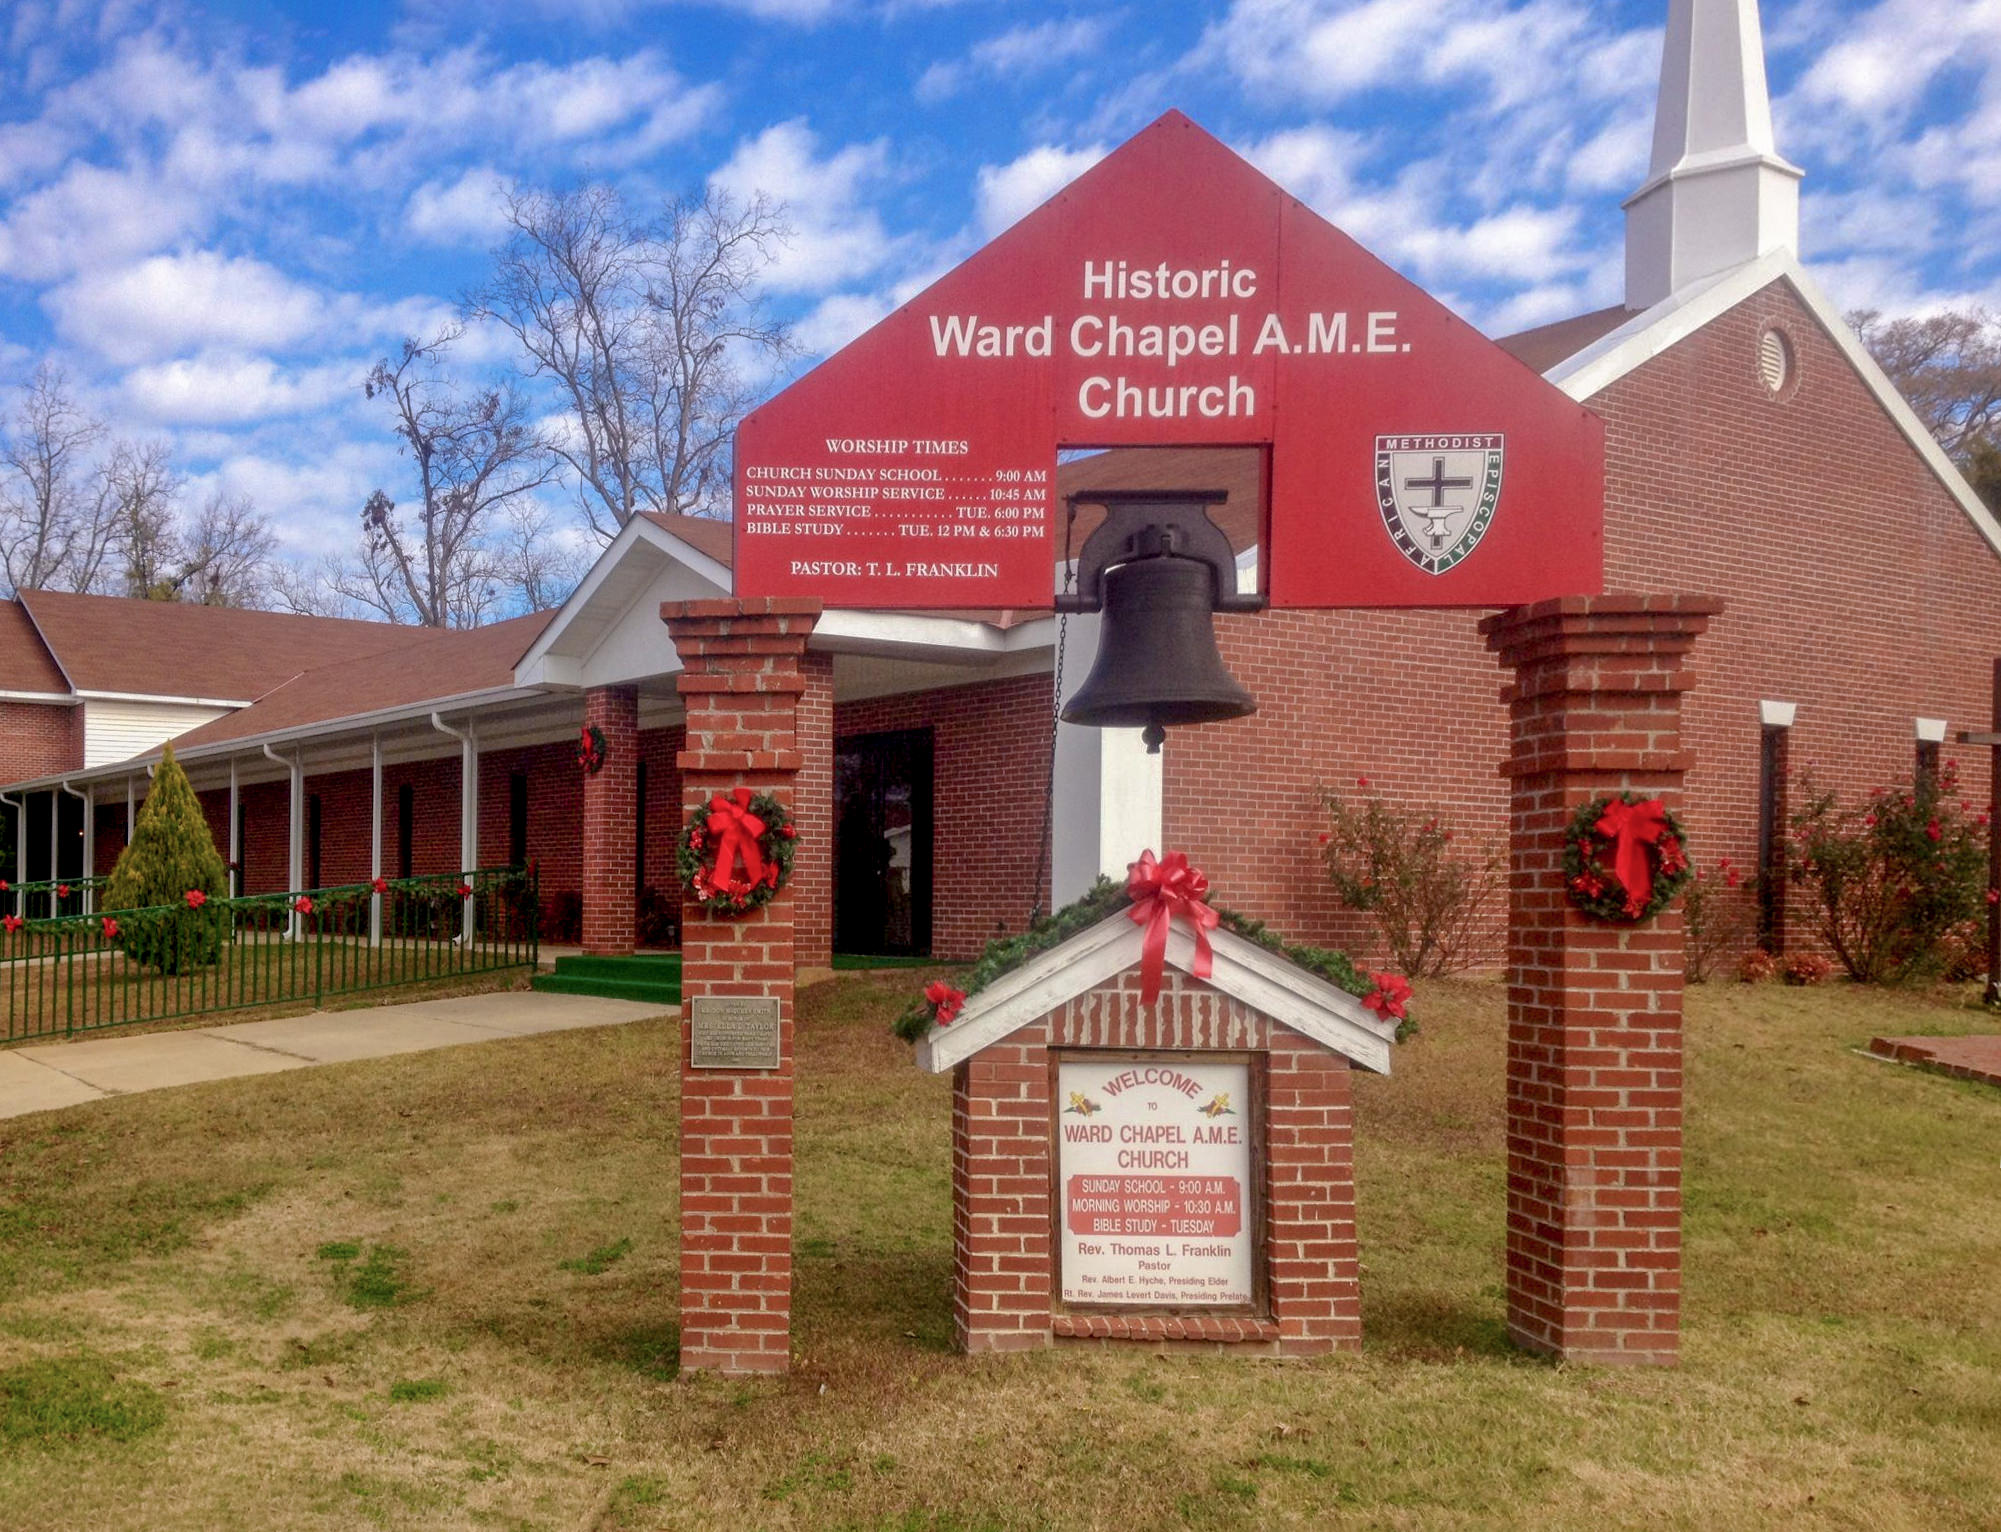 Ward Chapel A.M.E. Church